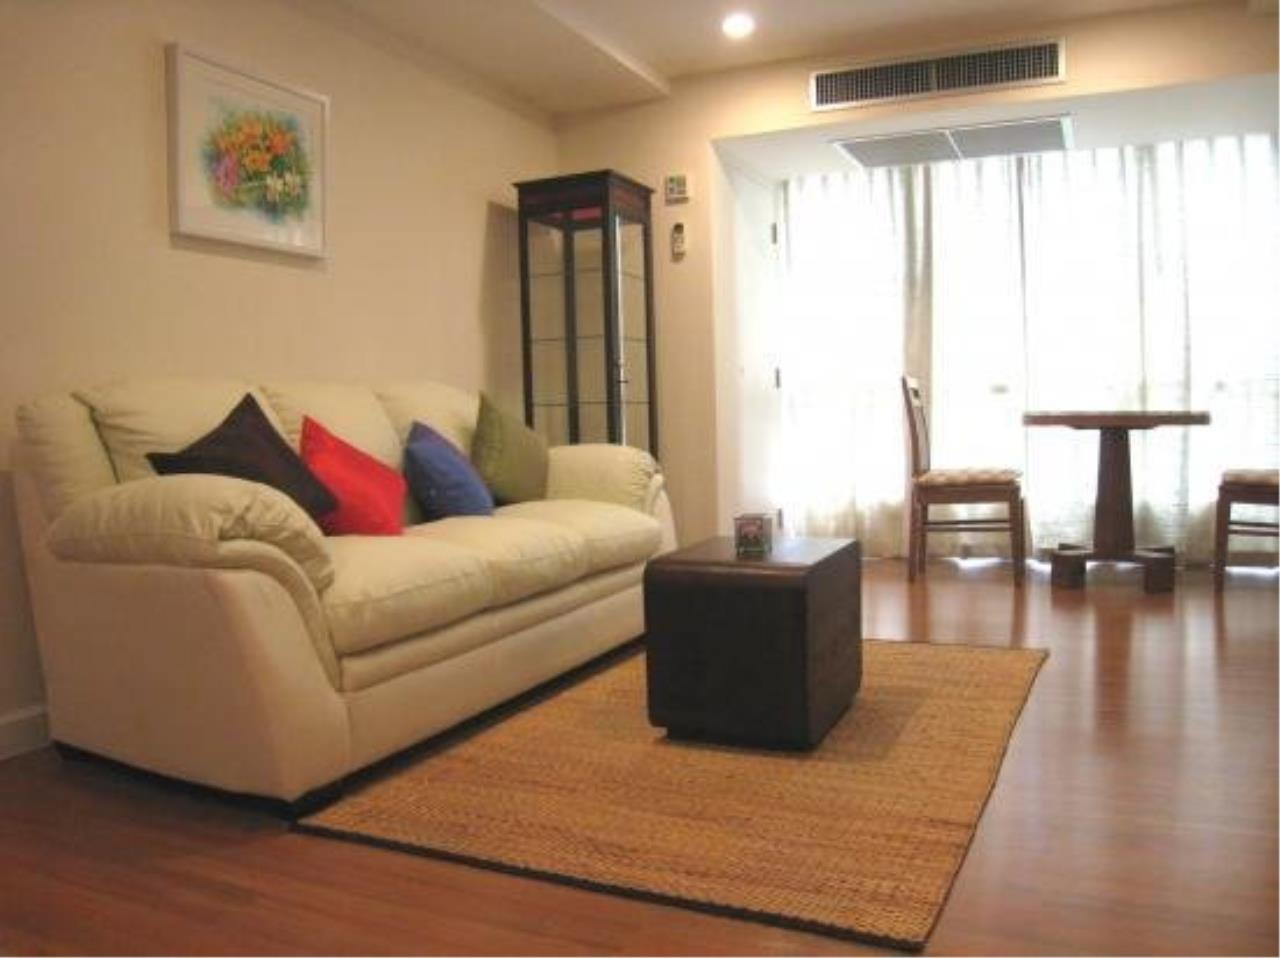 Piri Property Agency's Modern 2 Bedrooms in the The Trendy Condo for rent on high floor 1